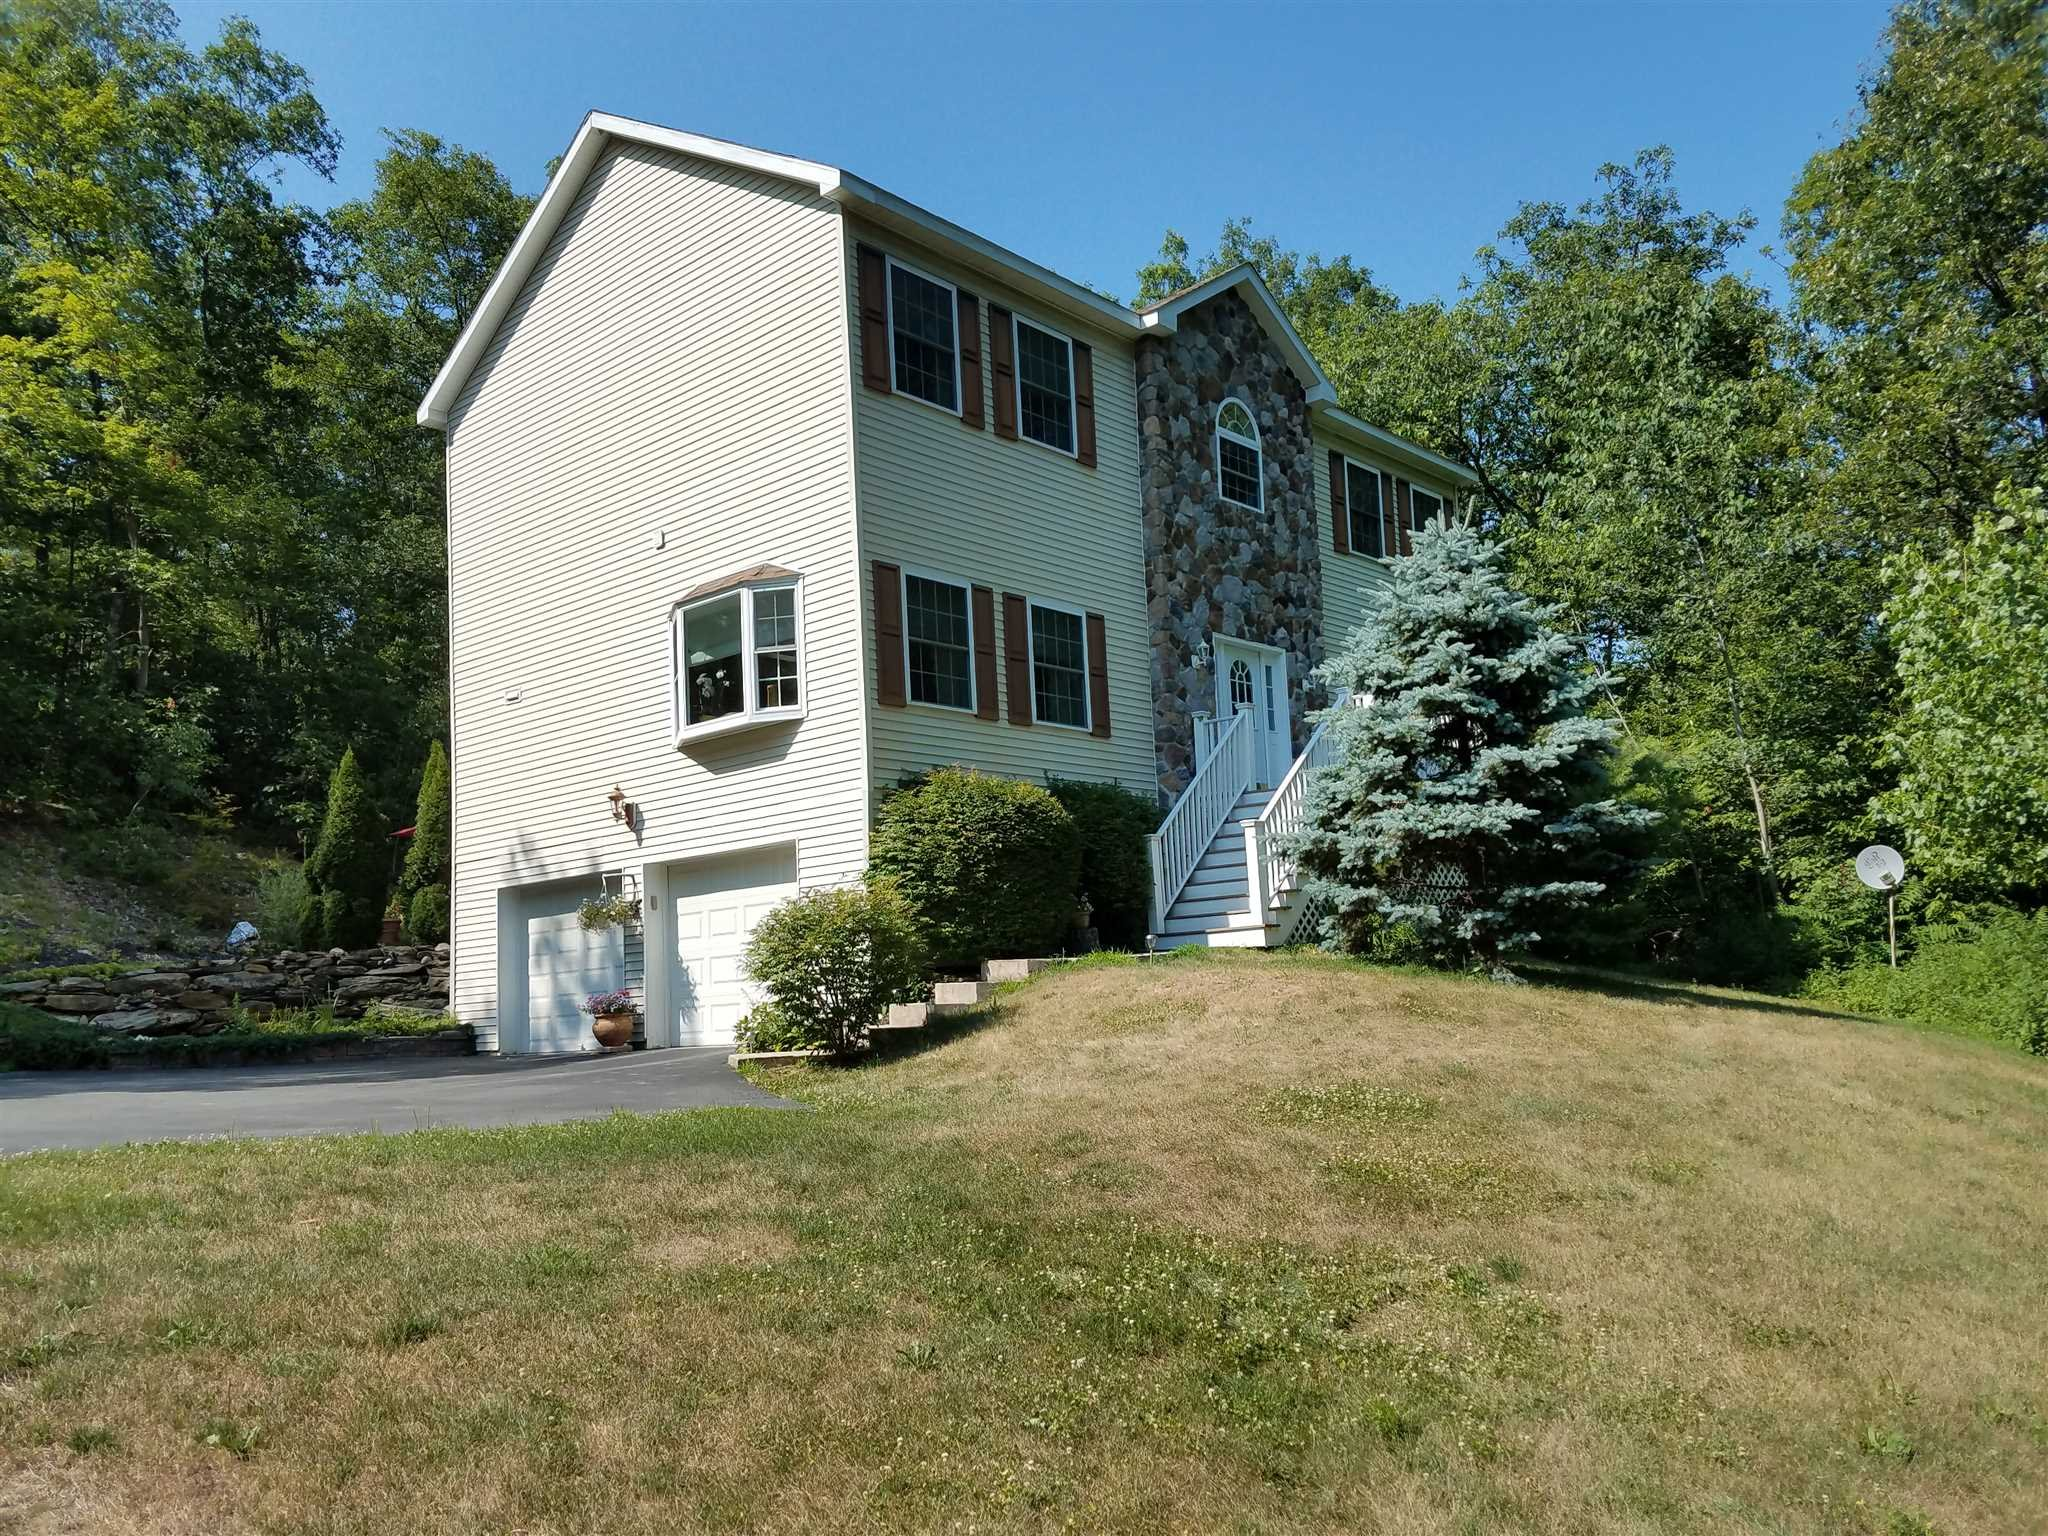 Single Family Home for Sale at 100 HOEFER Road 100 HOEFER Road Gallatin, New York 12571 United States